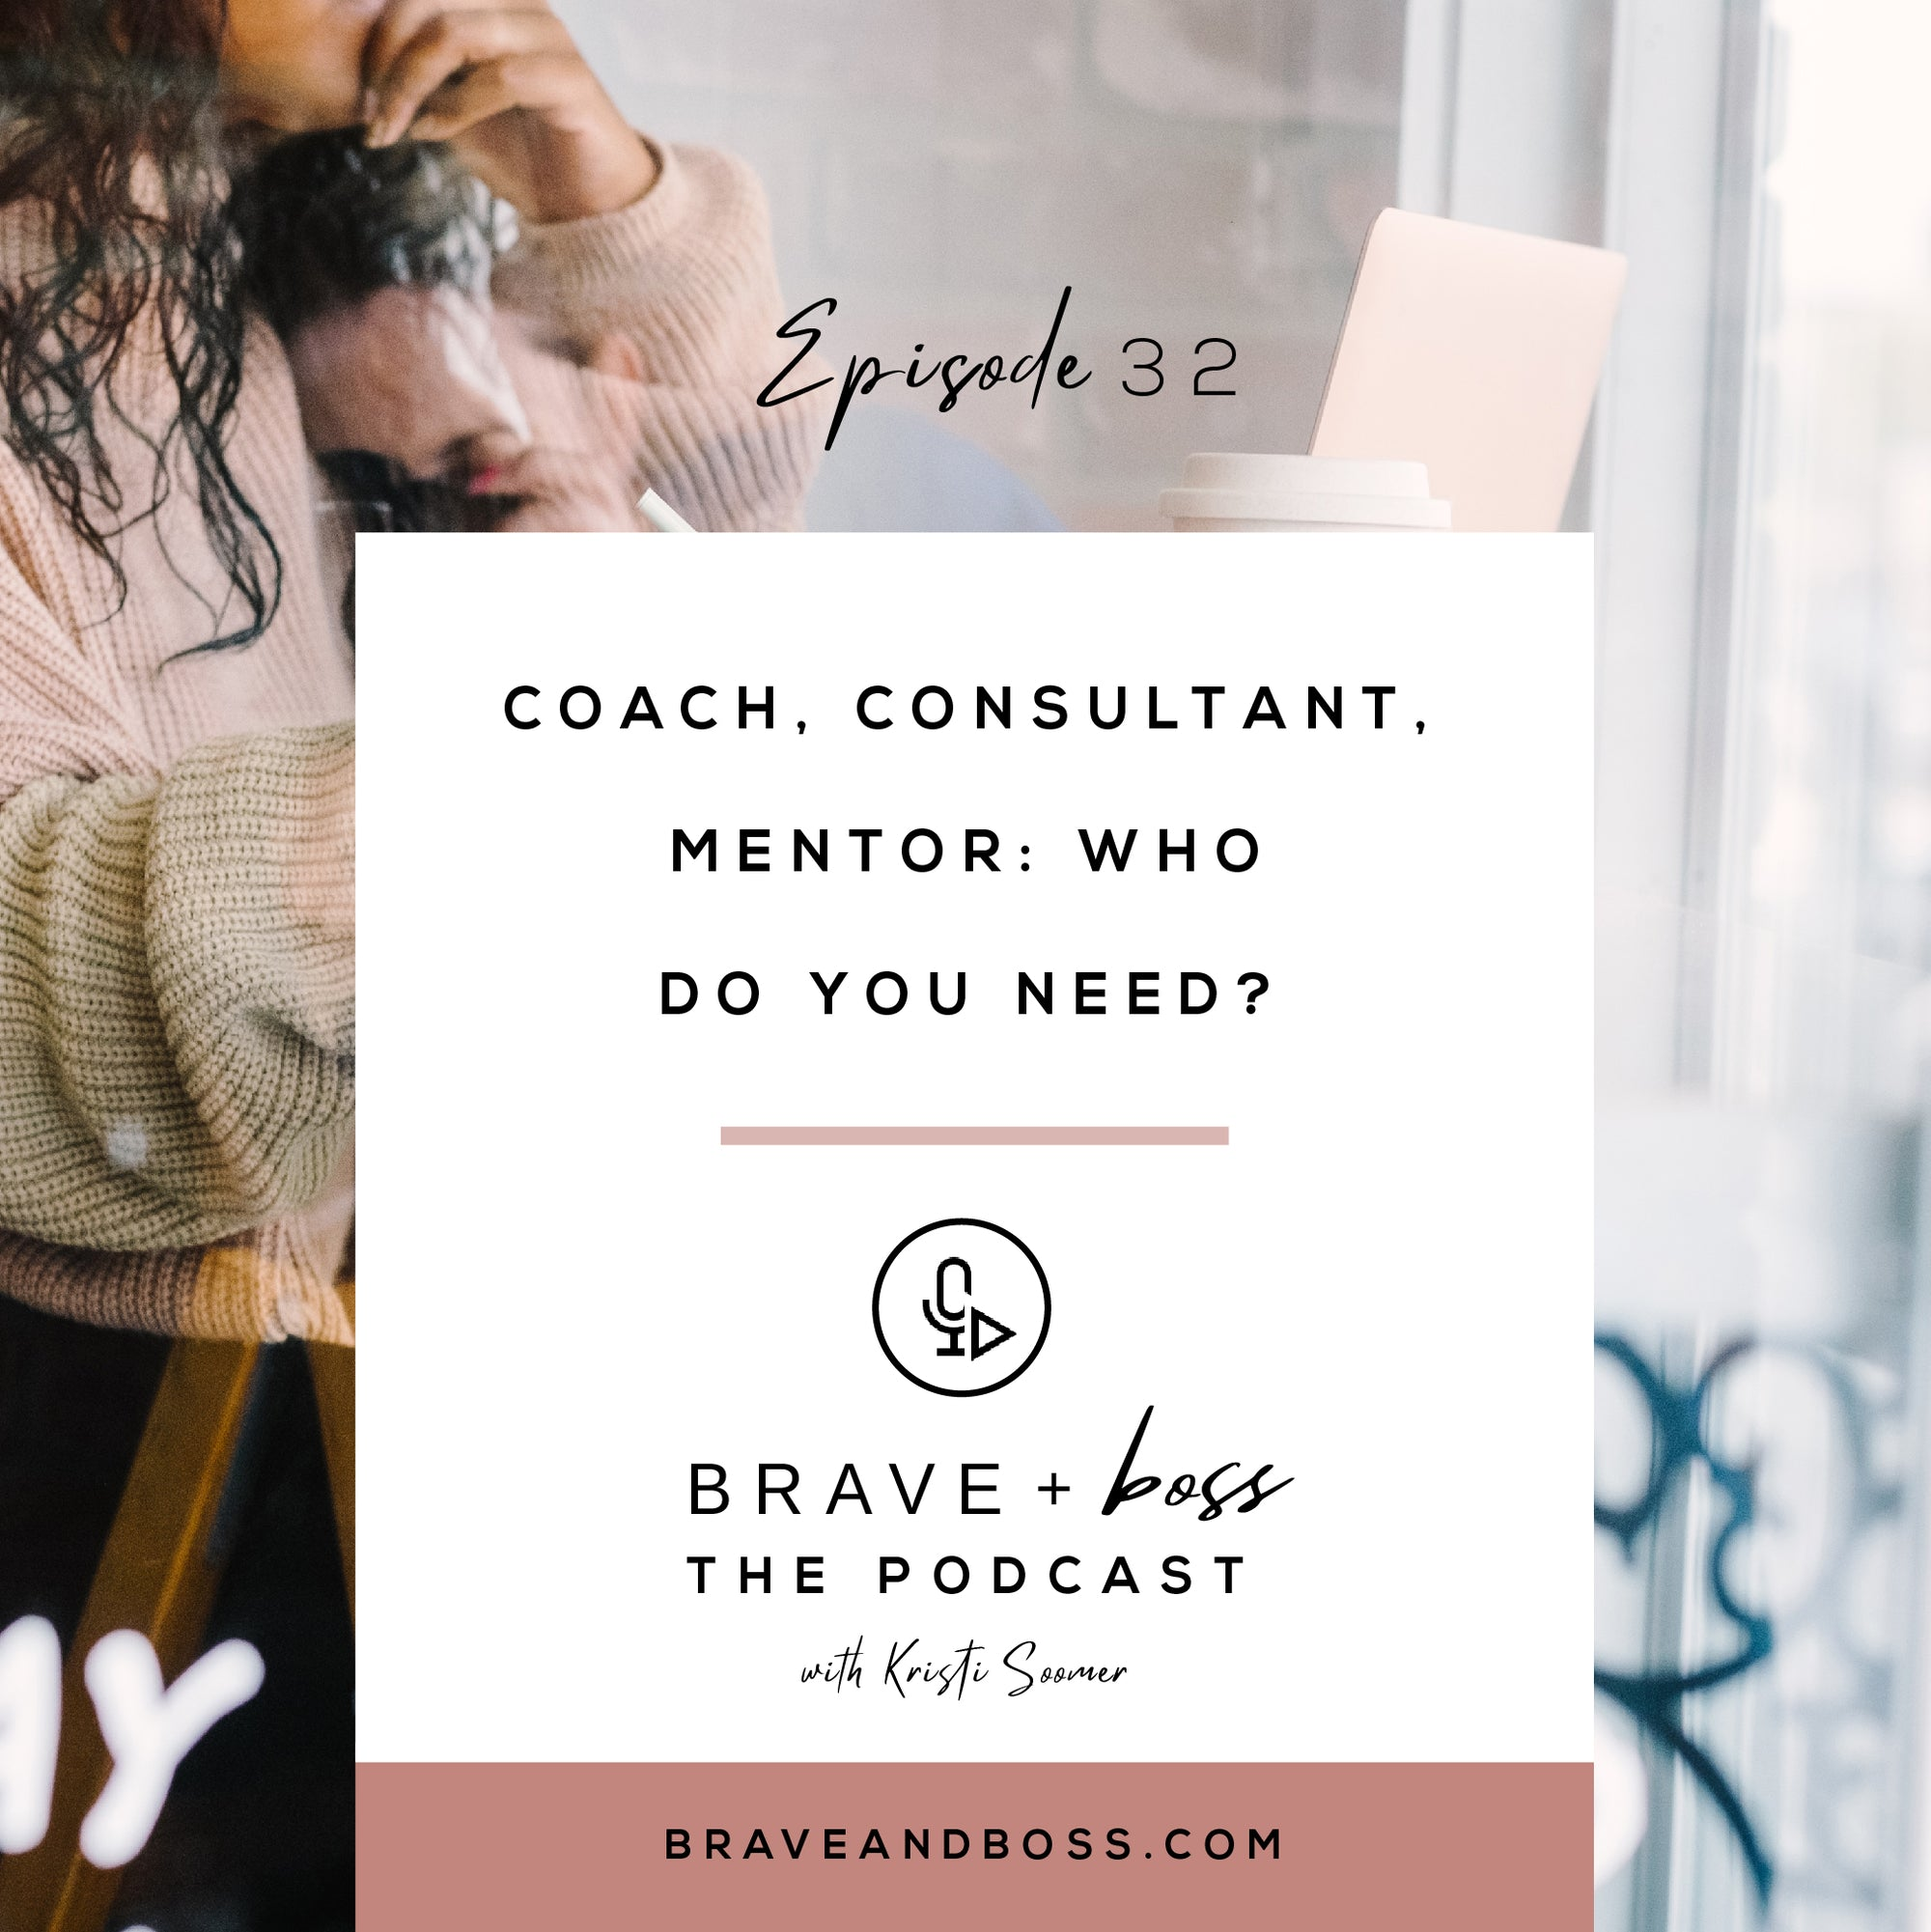 Coach, Consultant, Mentor: Who do you need?